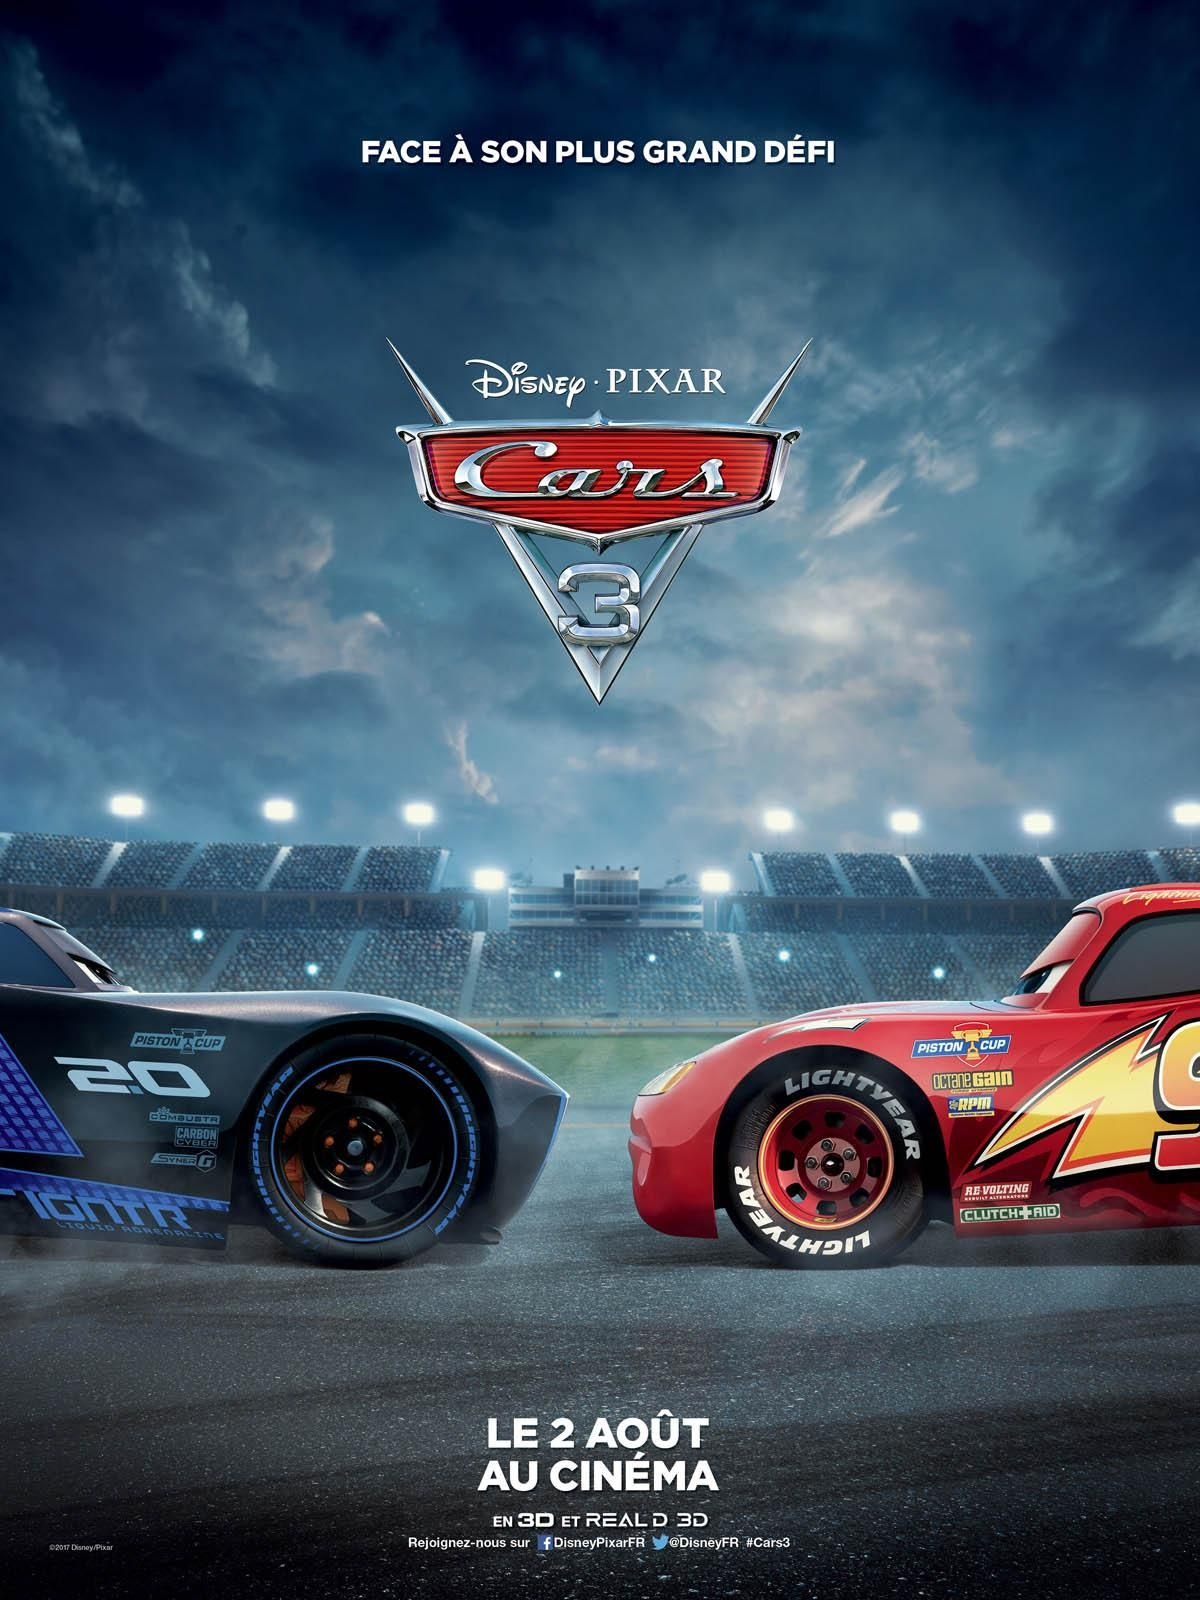 Cars 3 2017 Hd Wallpaper From Gallsource Com Cars 3 Full Movie Cars Movie Pixar Cars